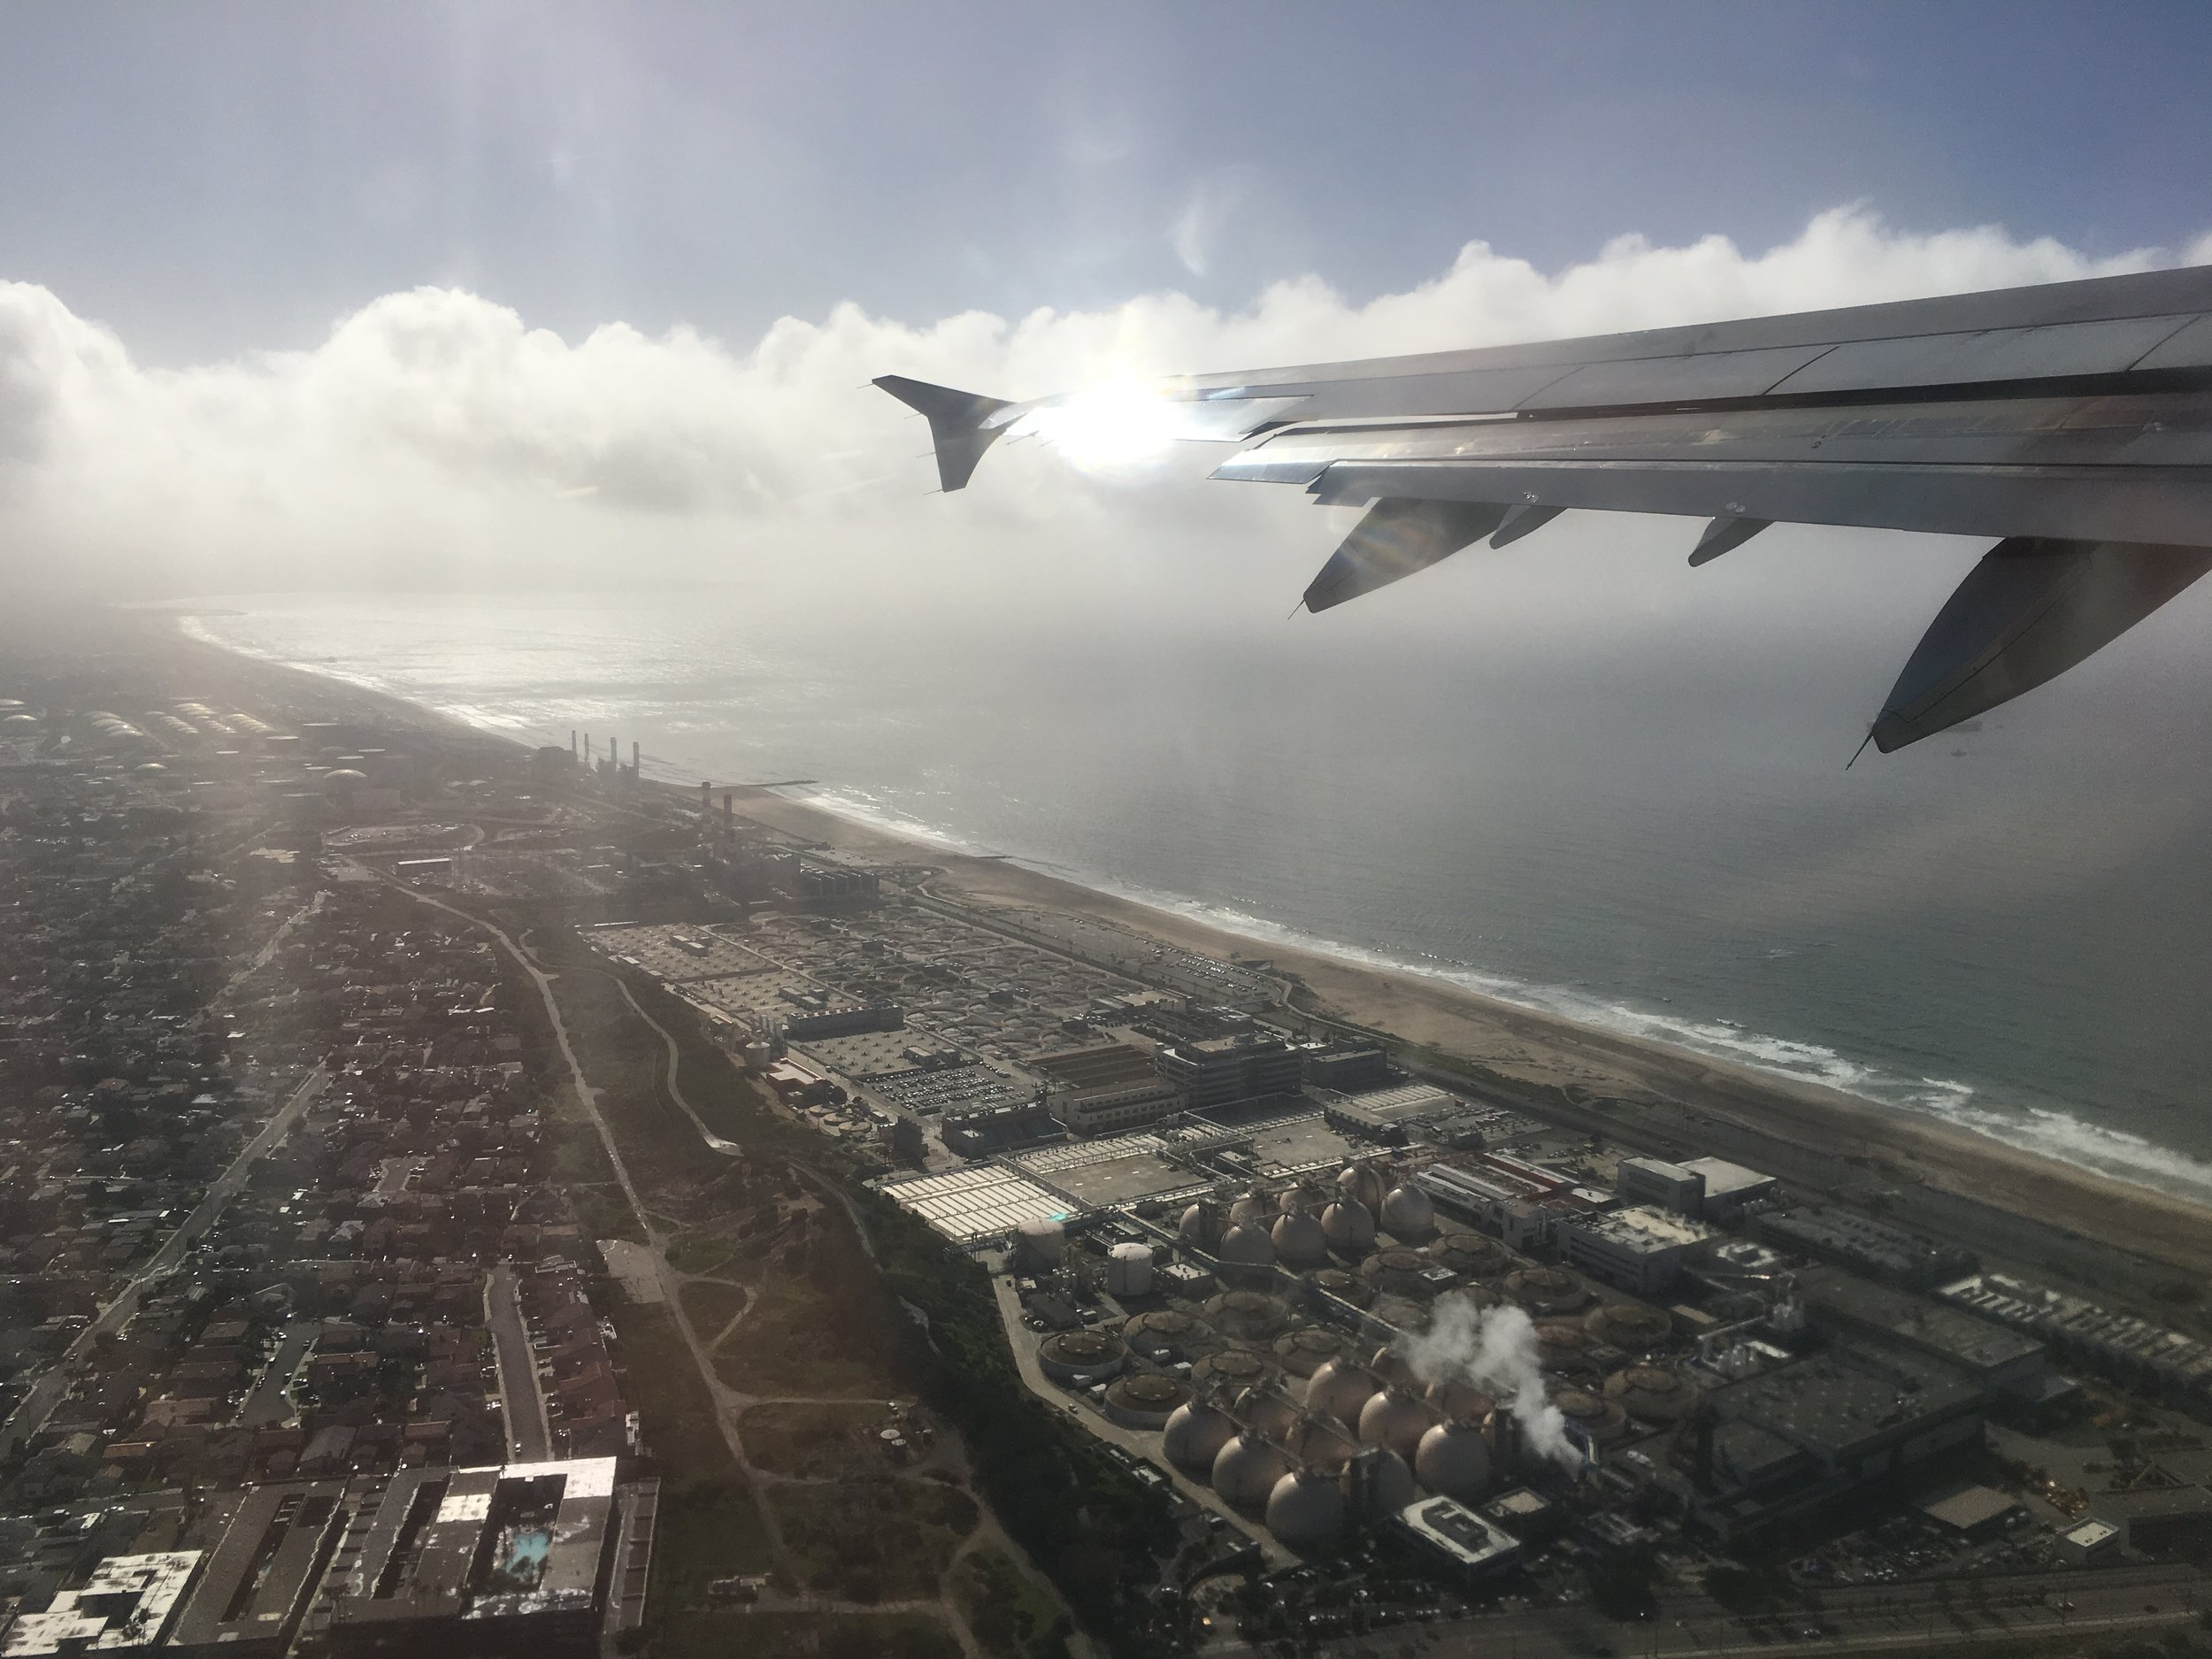 Bye, Bye LA - First time I have seen the Pacific Ocean